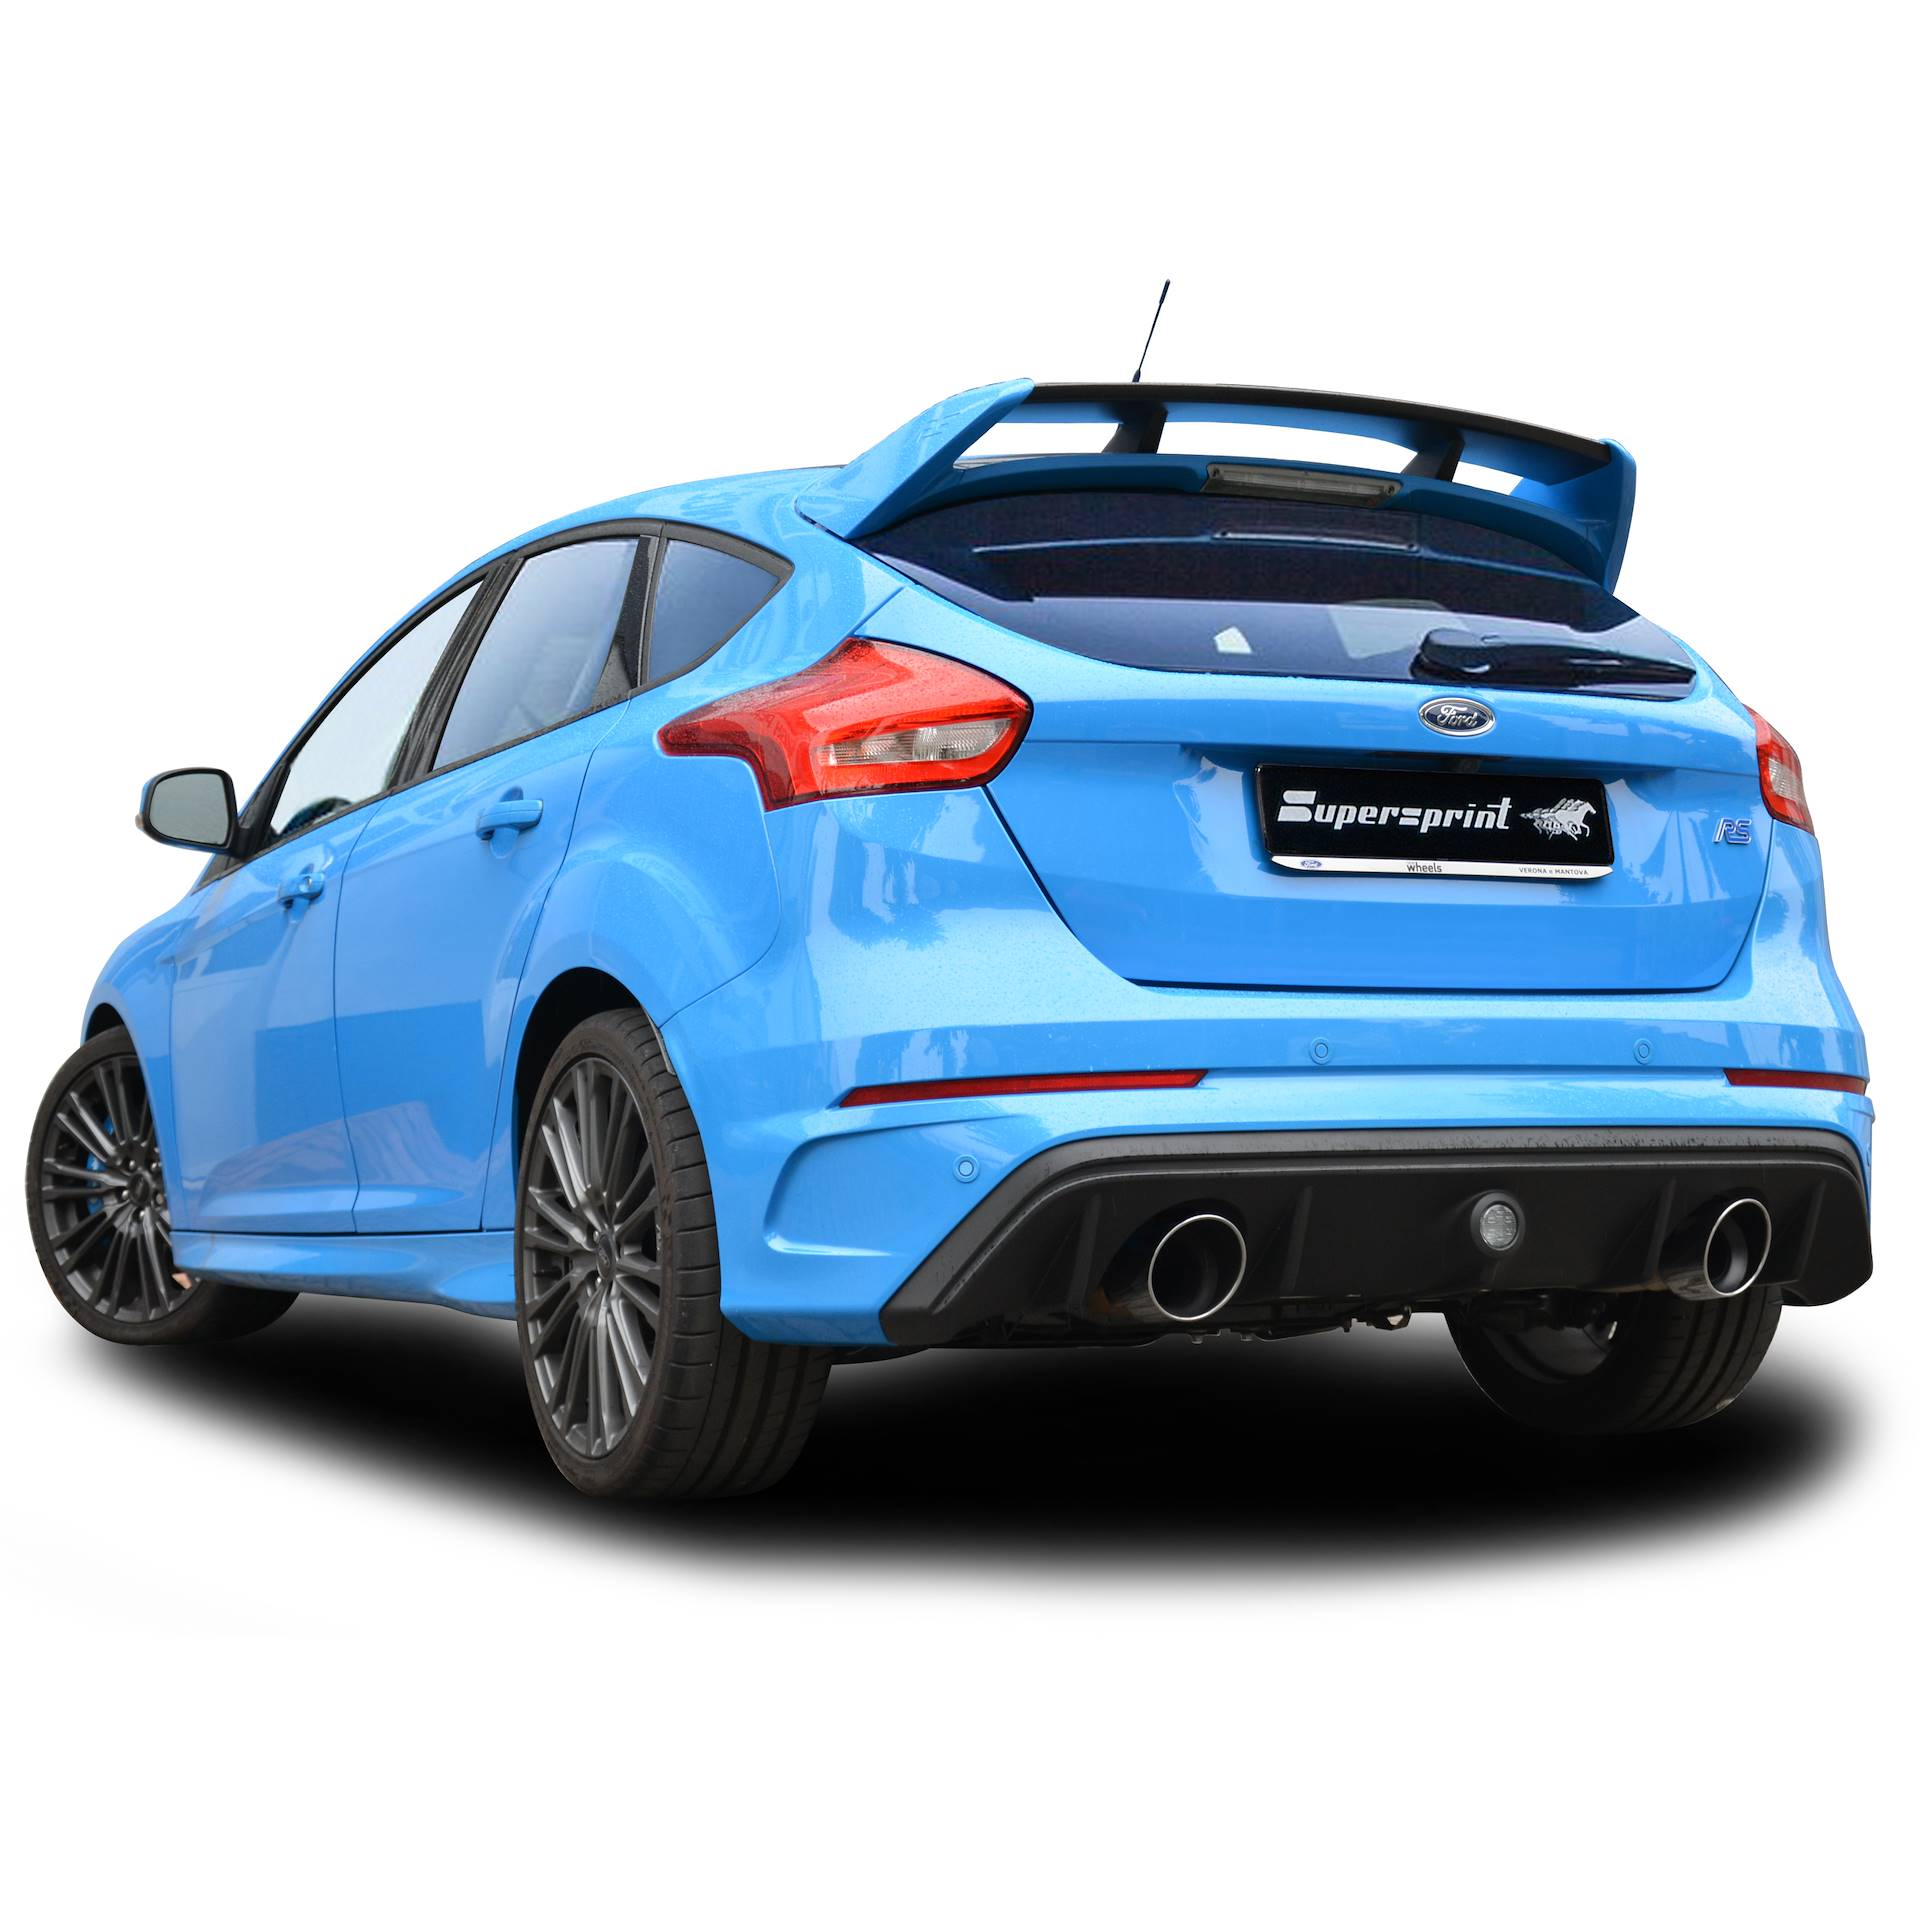 performance sport exhaust for ford focus rs mk3 with valve ford focus rs turbo 4x4 350 hp. Black Bedroom Furniture Sets. Home Design Ideas